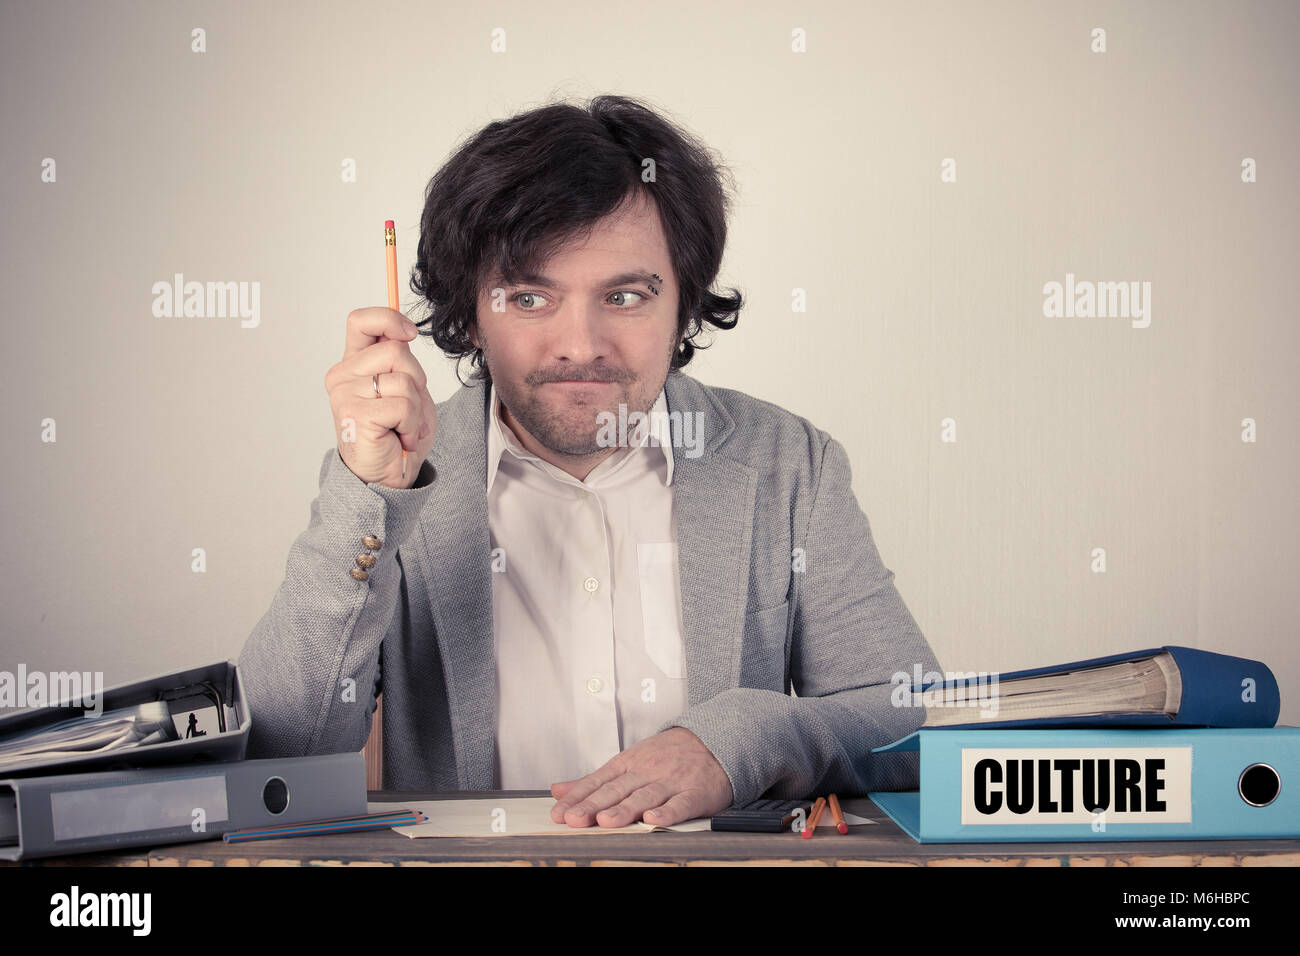 Culture text on the binder, worried bussinesman thinking by the work desk - Stock Image